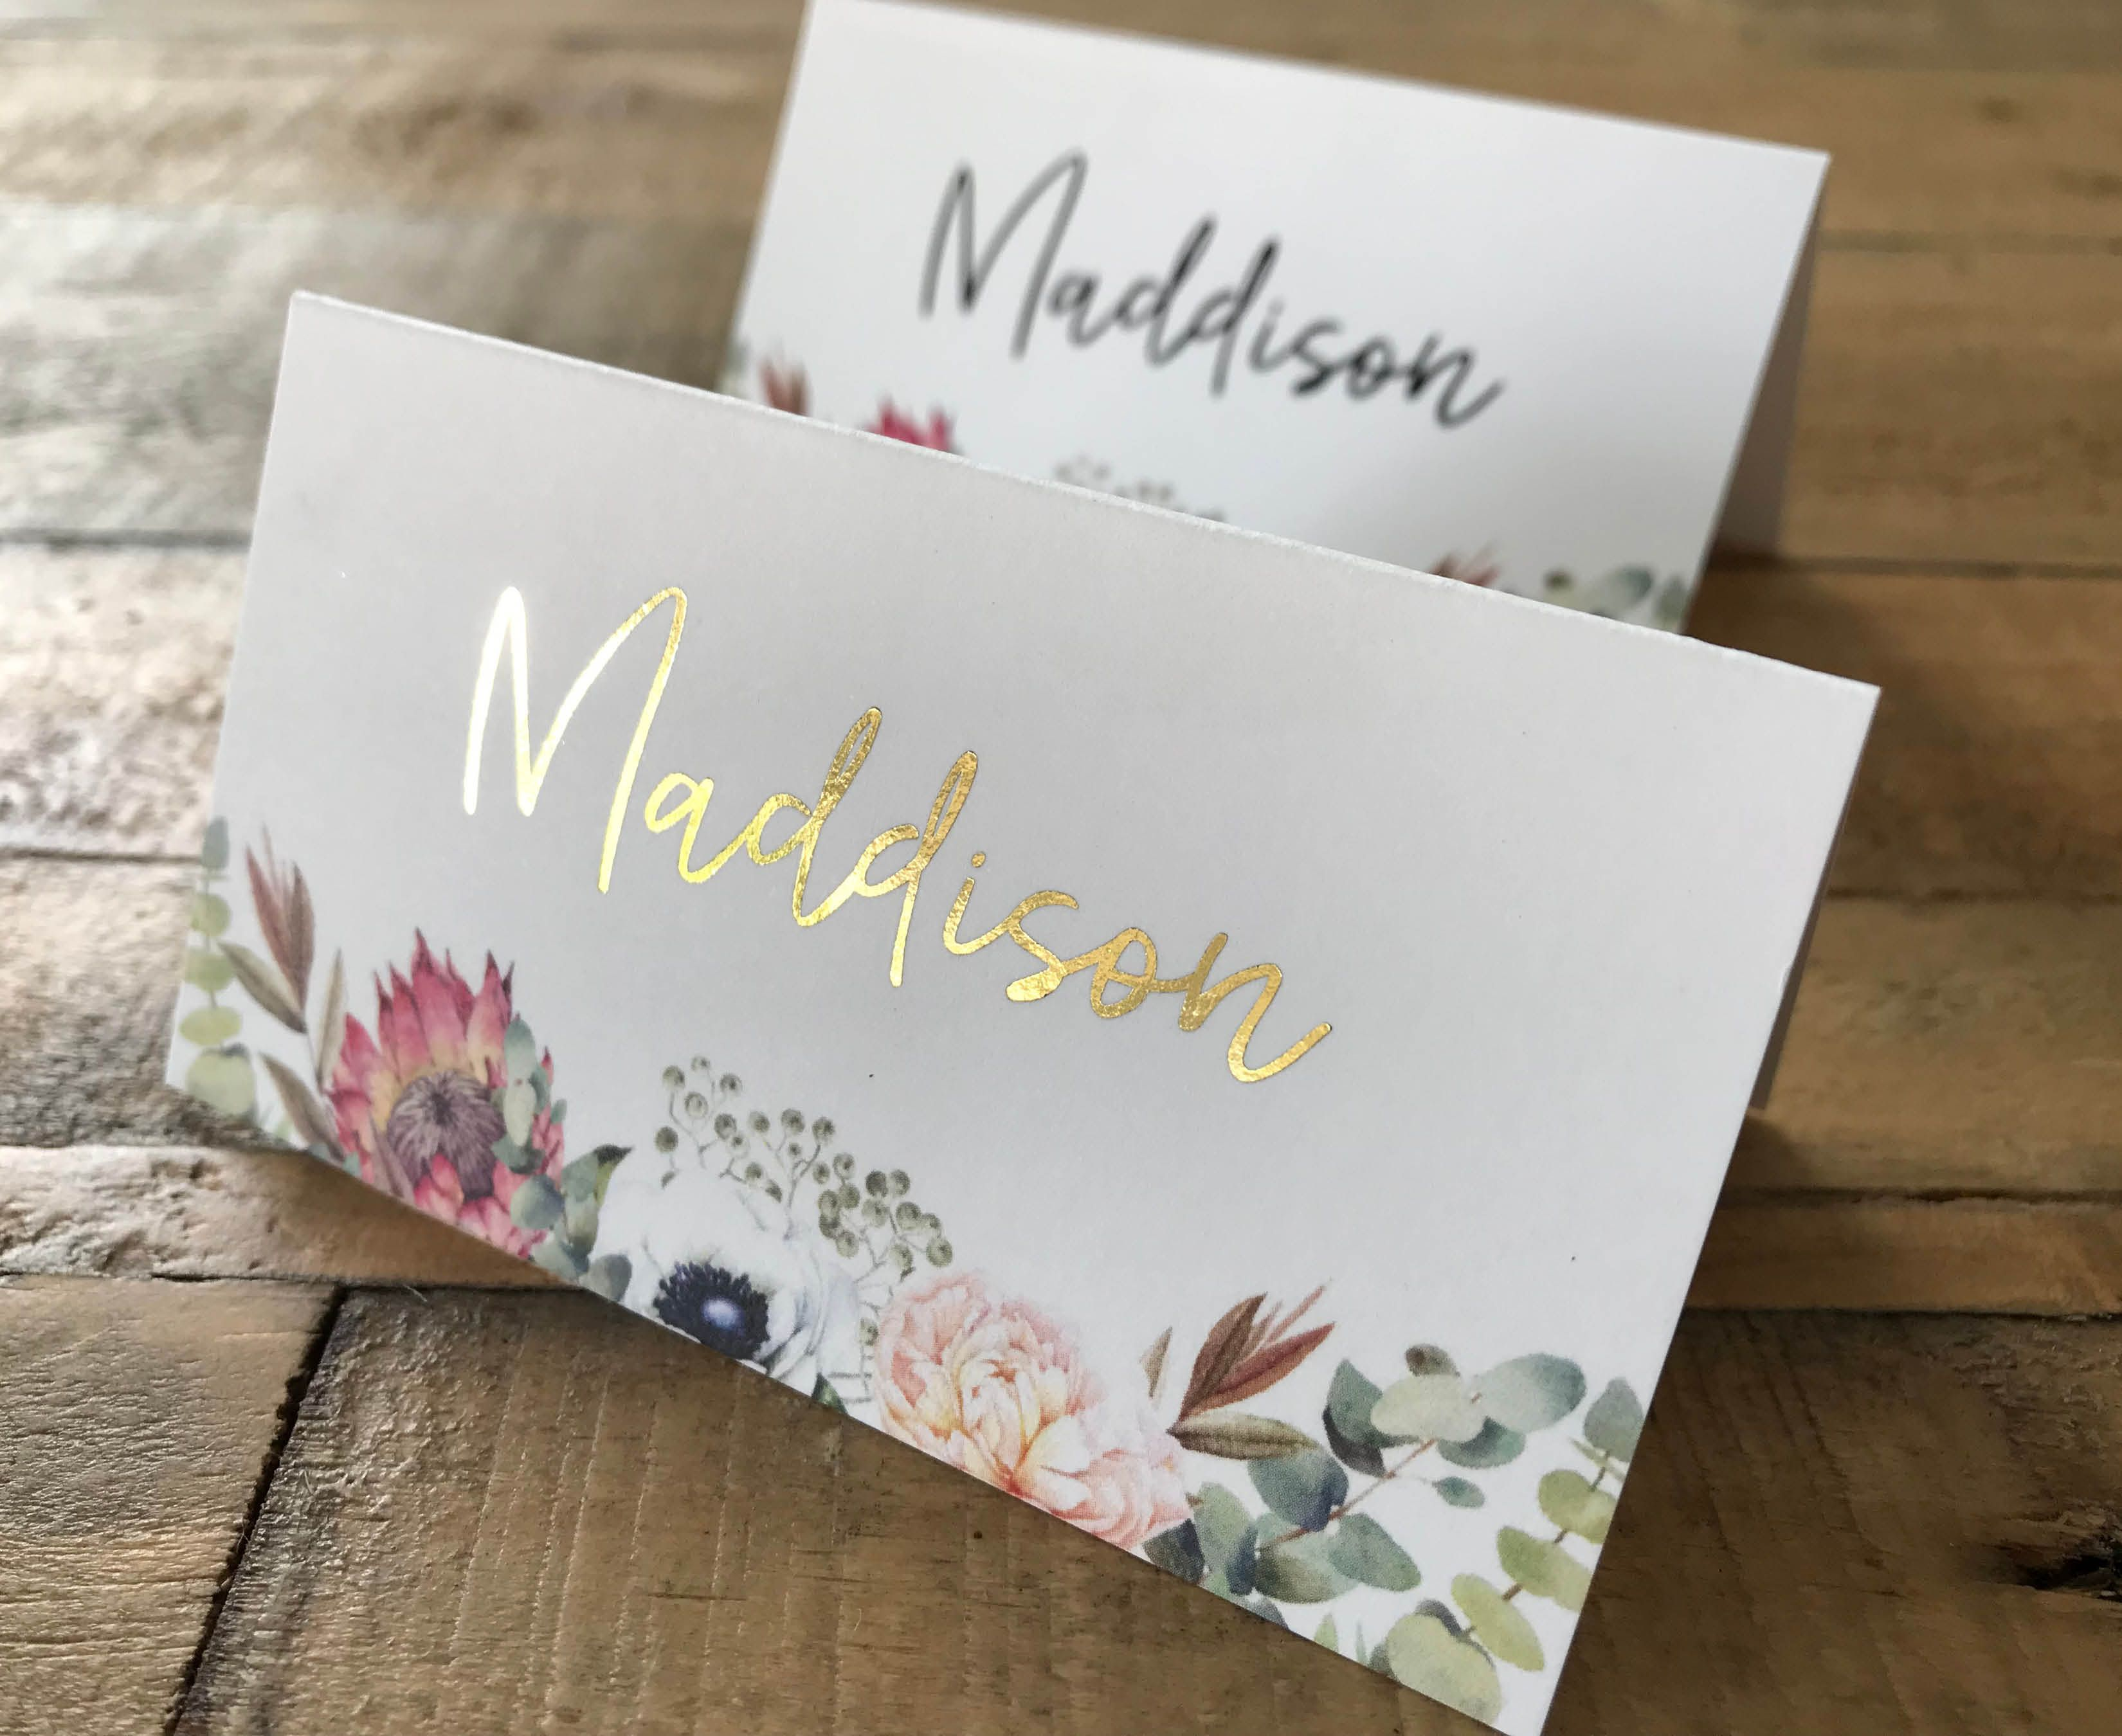 Reception Decor Watercolor Floral Place Card Calligraphy Wedding Place Card Table Card Watercolor Floral Escort Card